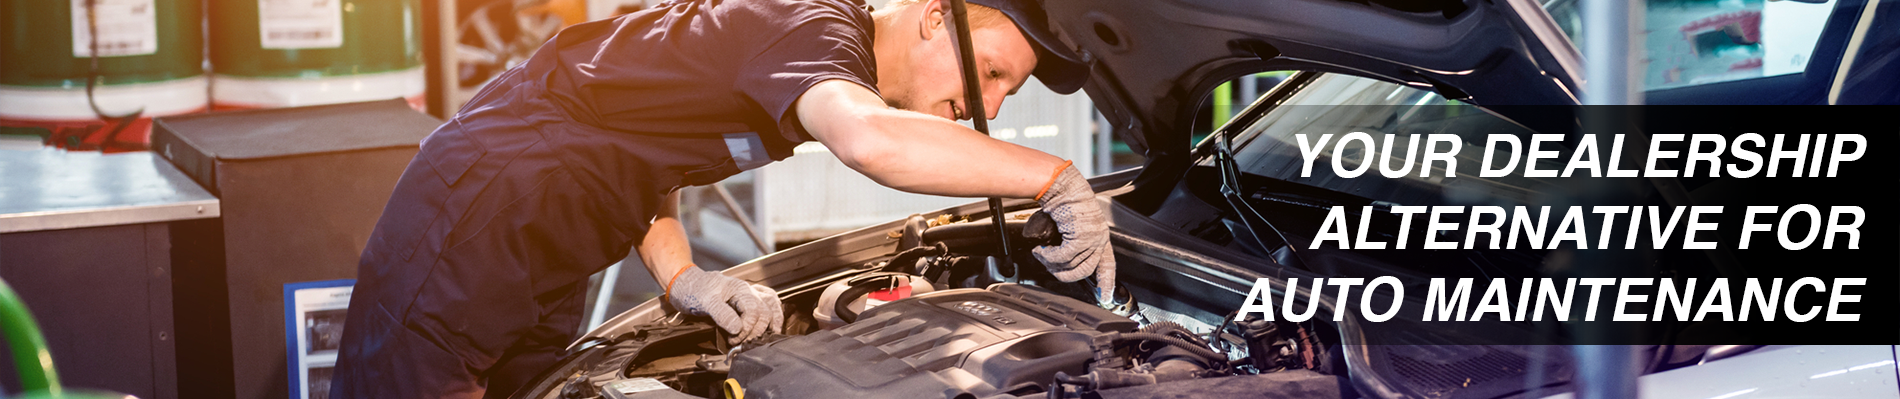 Your Dealership Alternative for Auto Maintenance